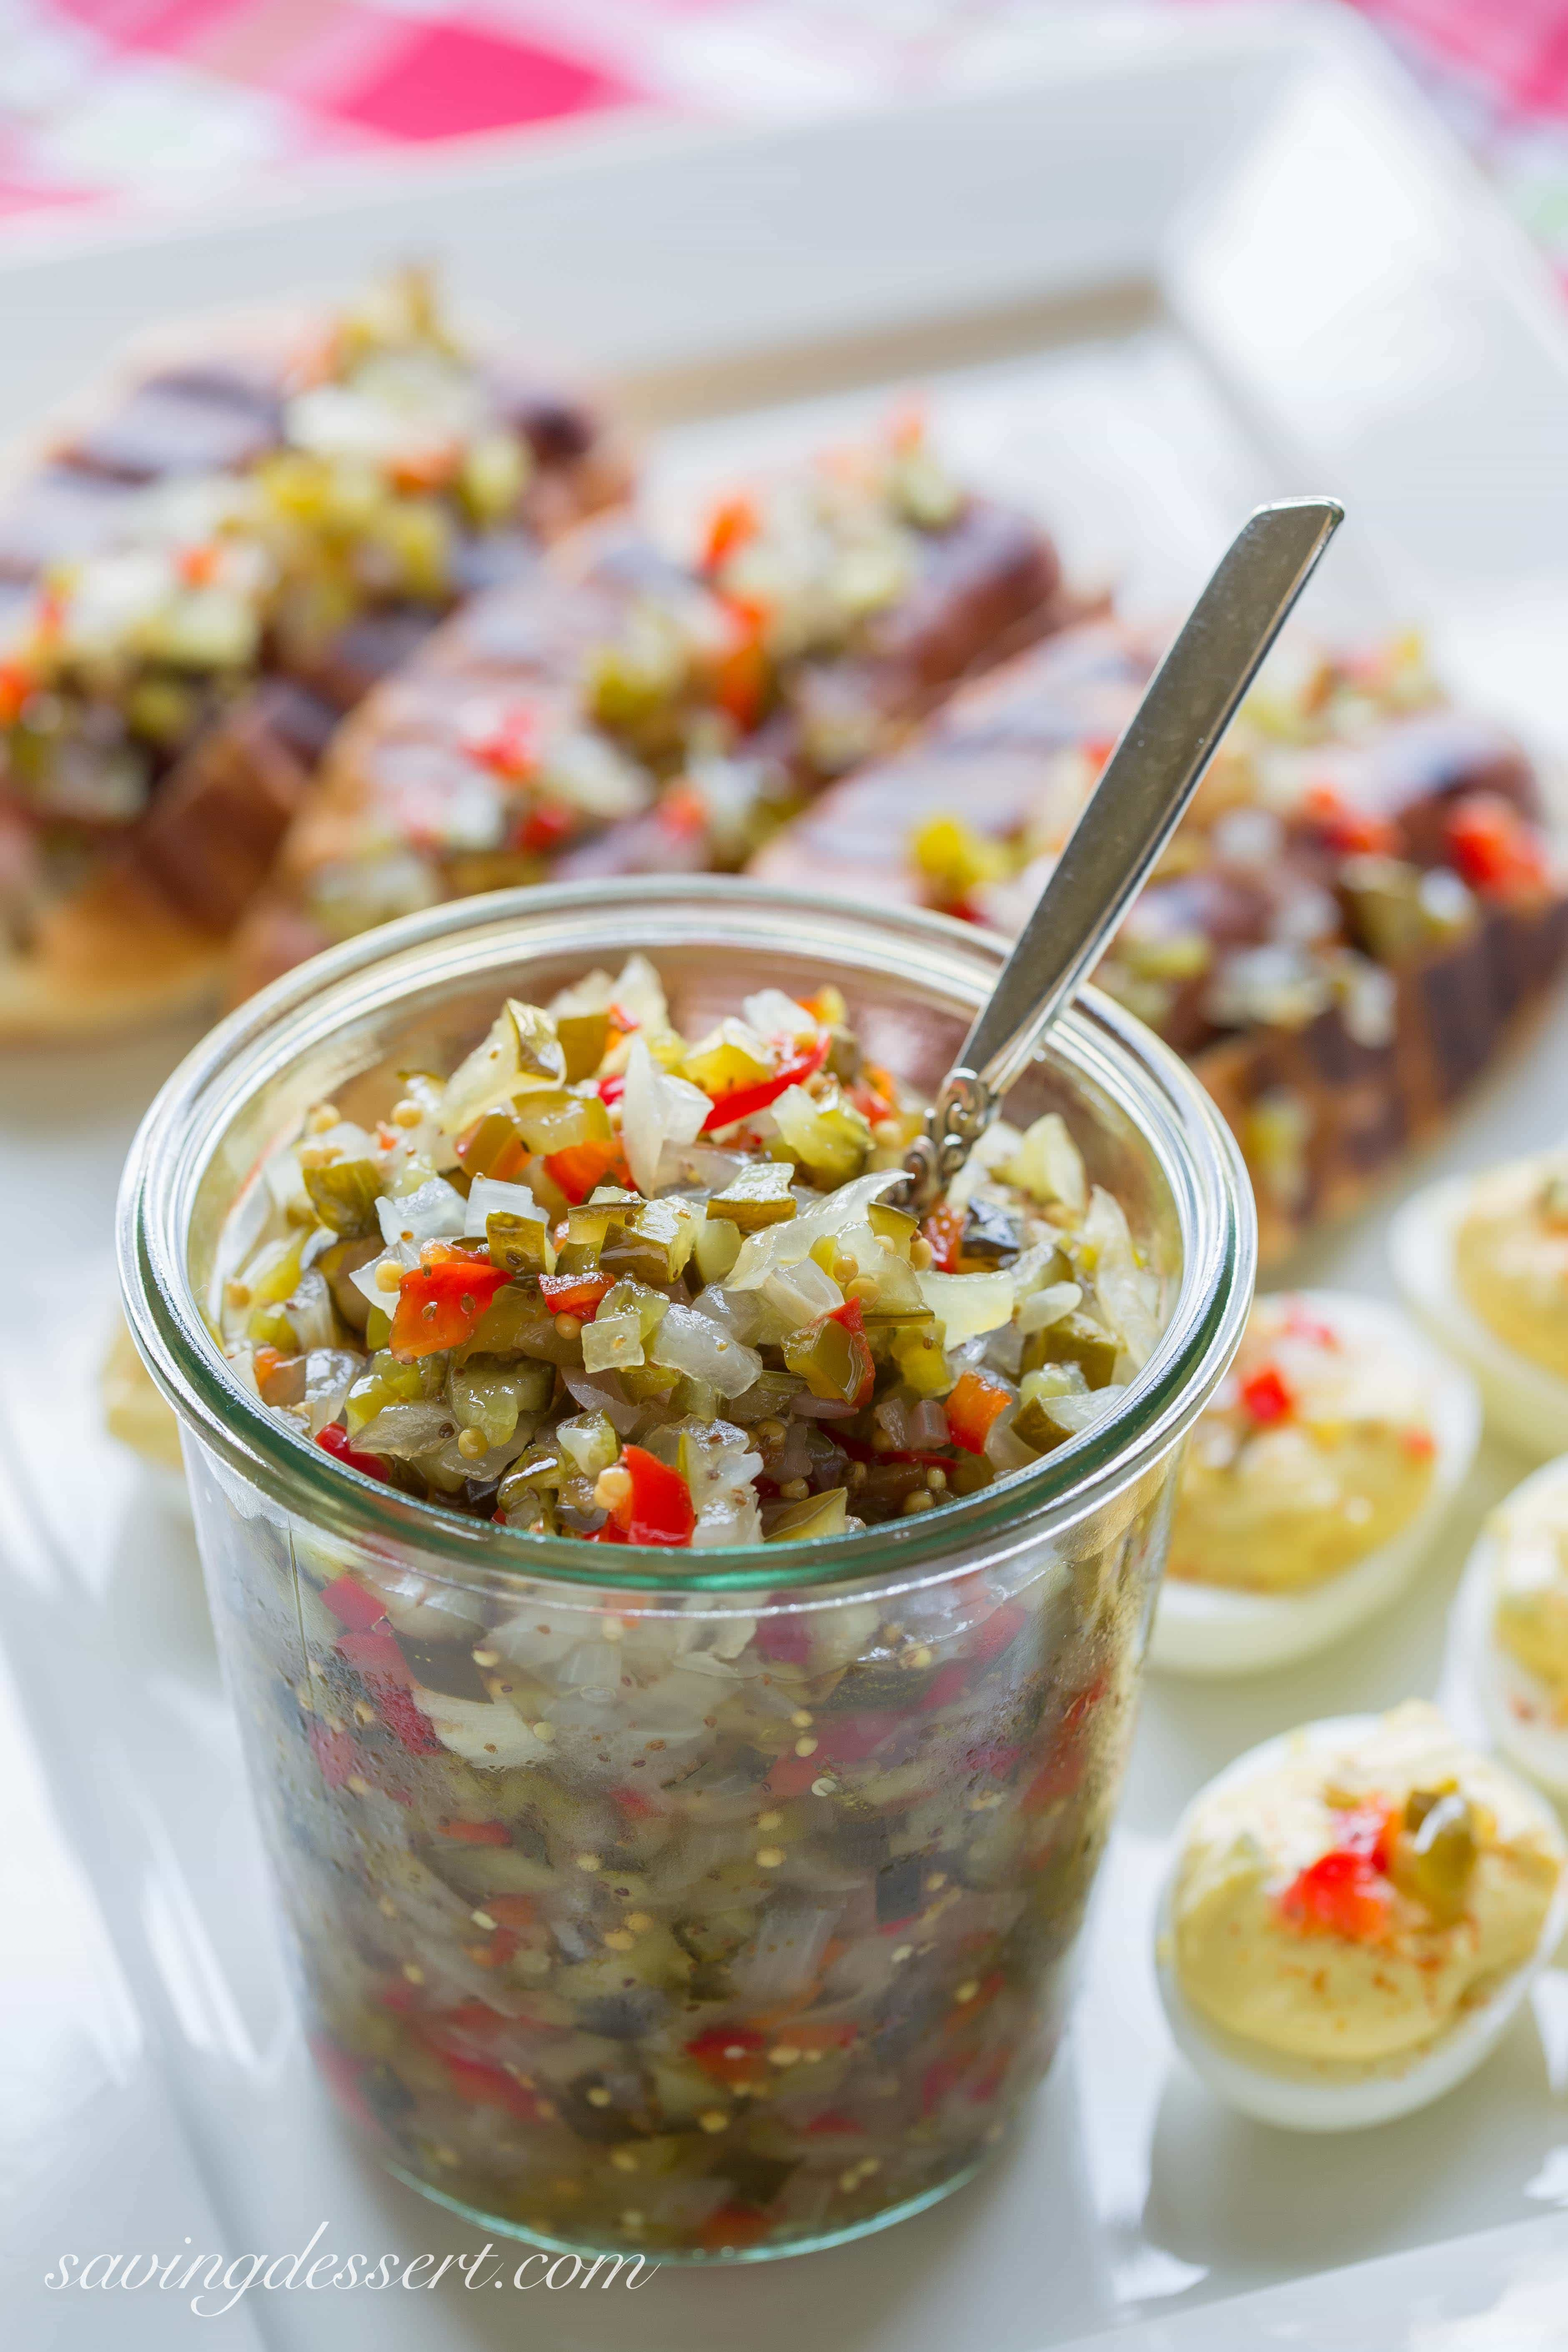 Can Dogs Eat Pickle Relish